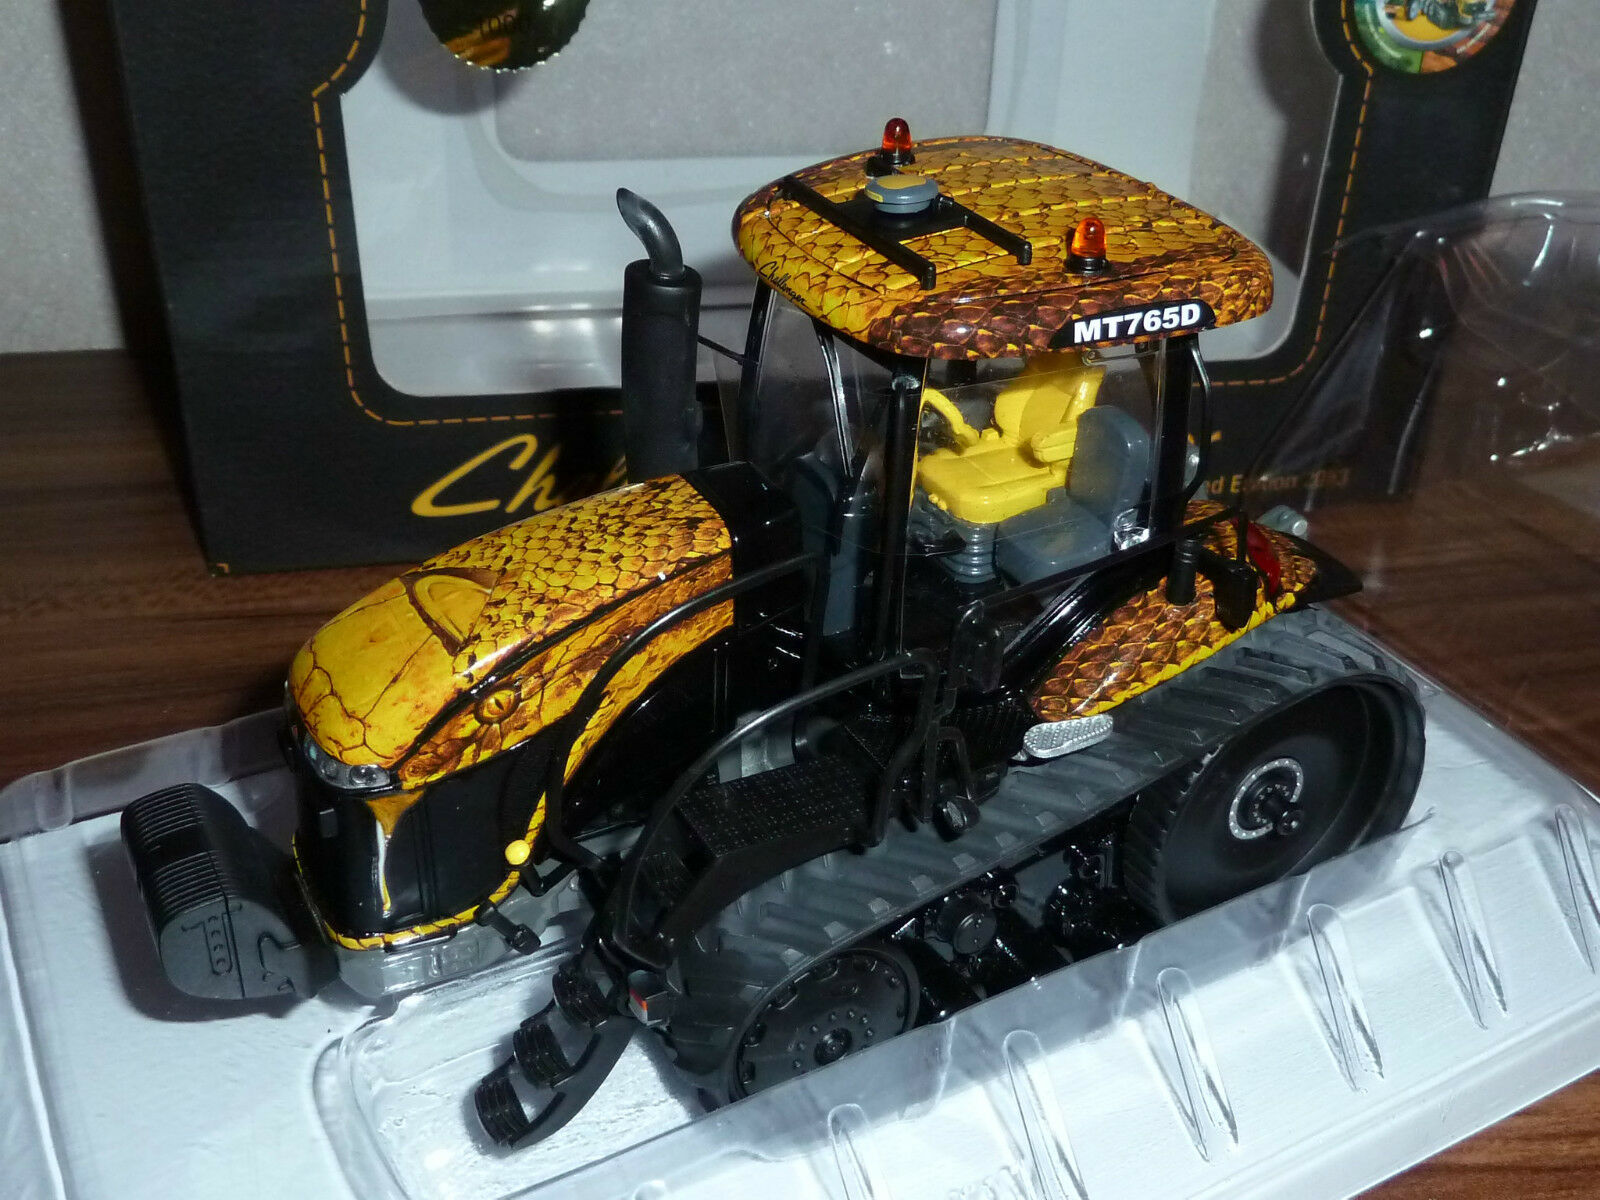 Challenger mt765d Field Viper Limited Edition 1000pcs. agritechnica no 2017 1 32